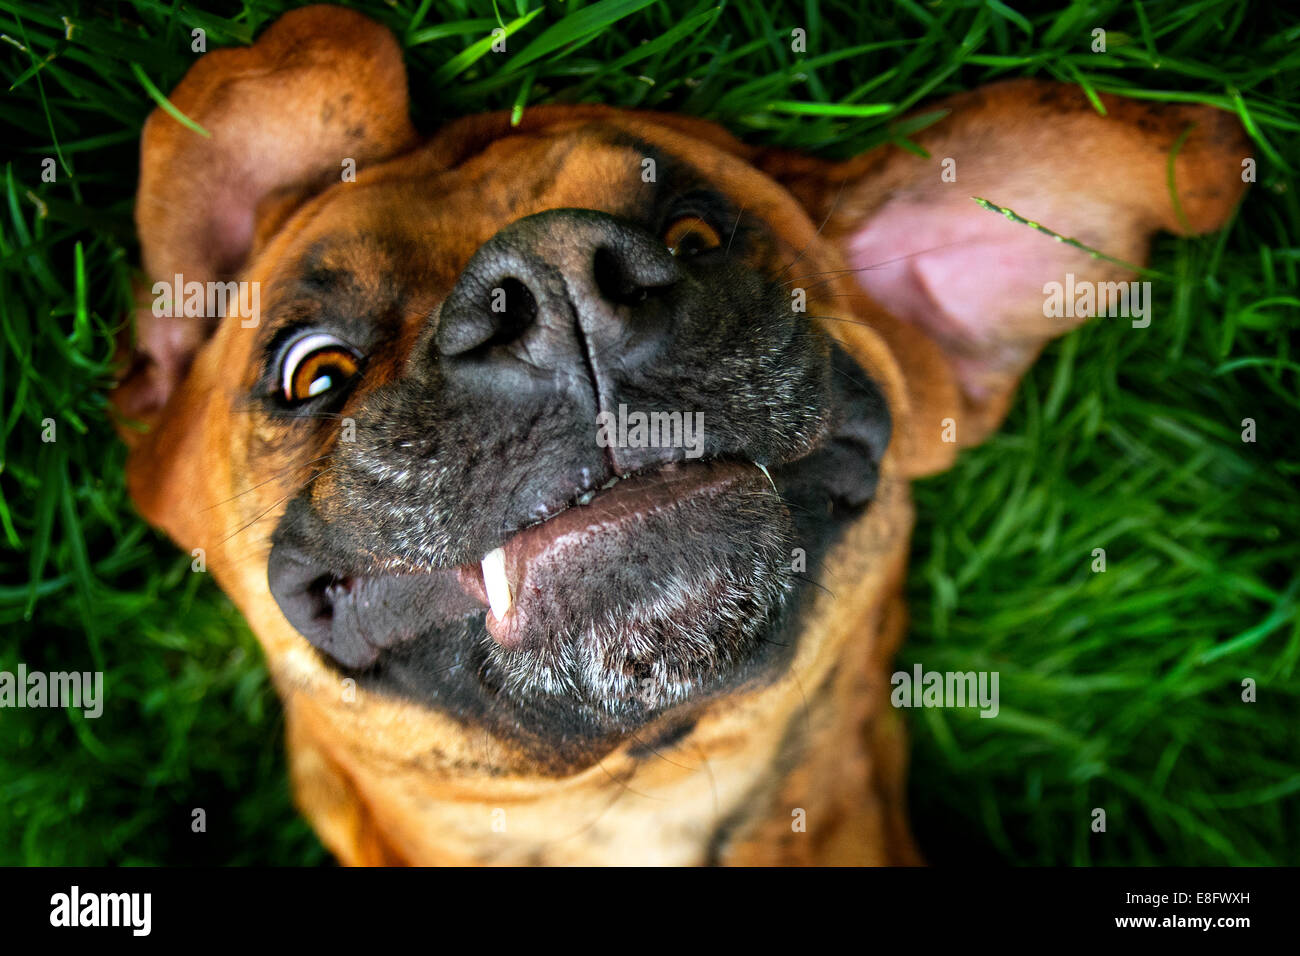 Brown dog laying playfully in grass - Stock Image